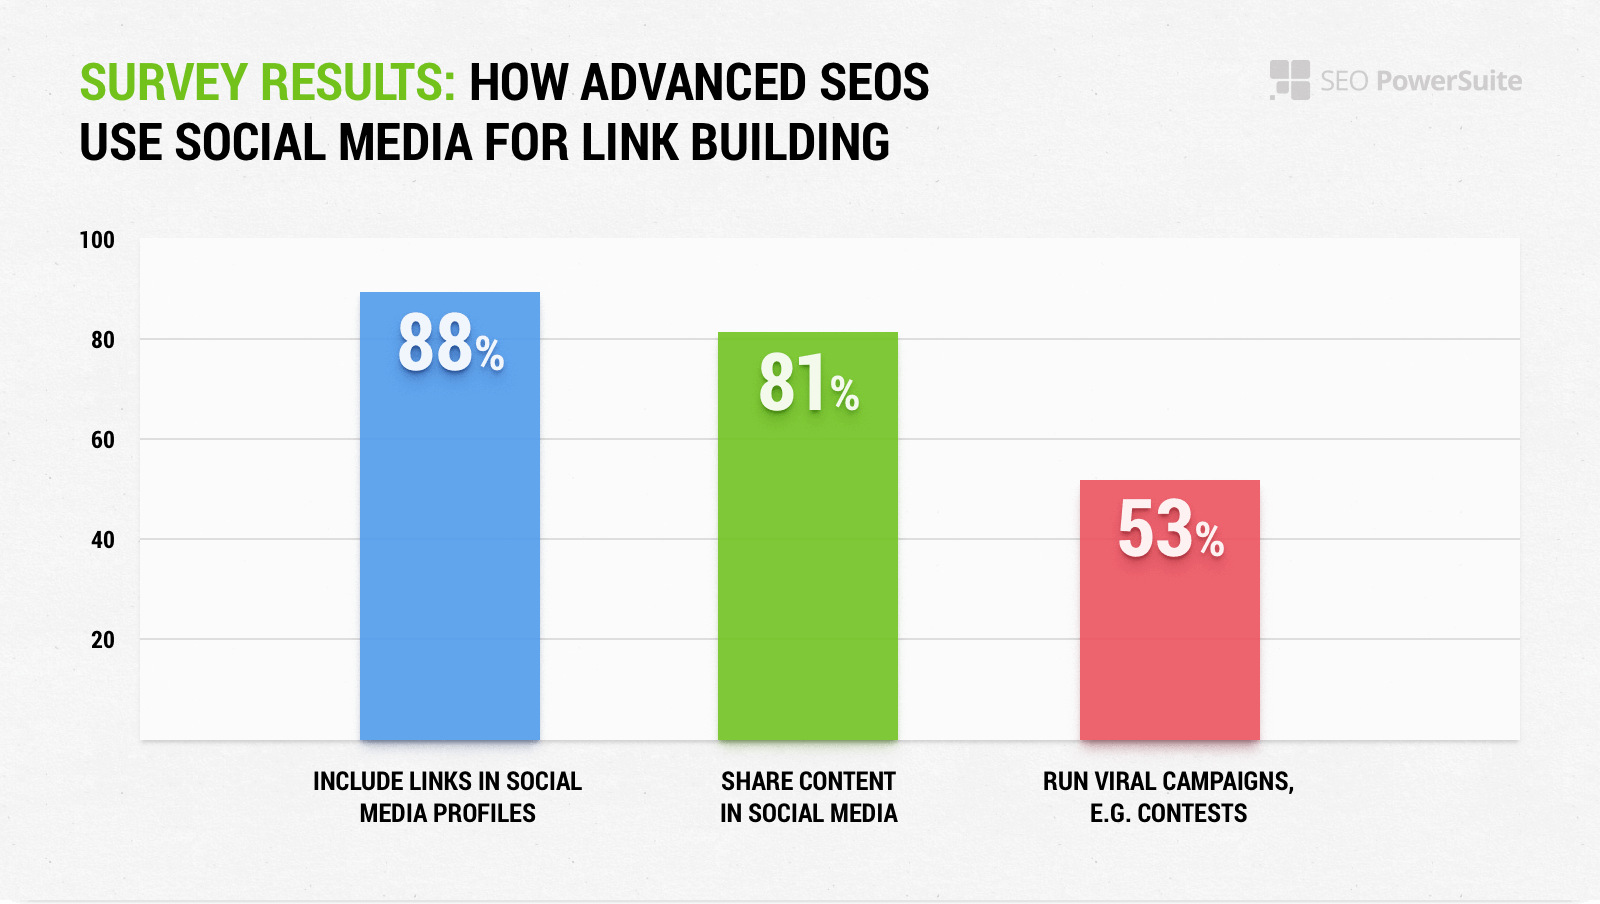 Survey Results: How Advanced SEOs Use Social Media For Link Building